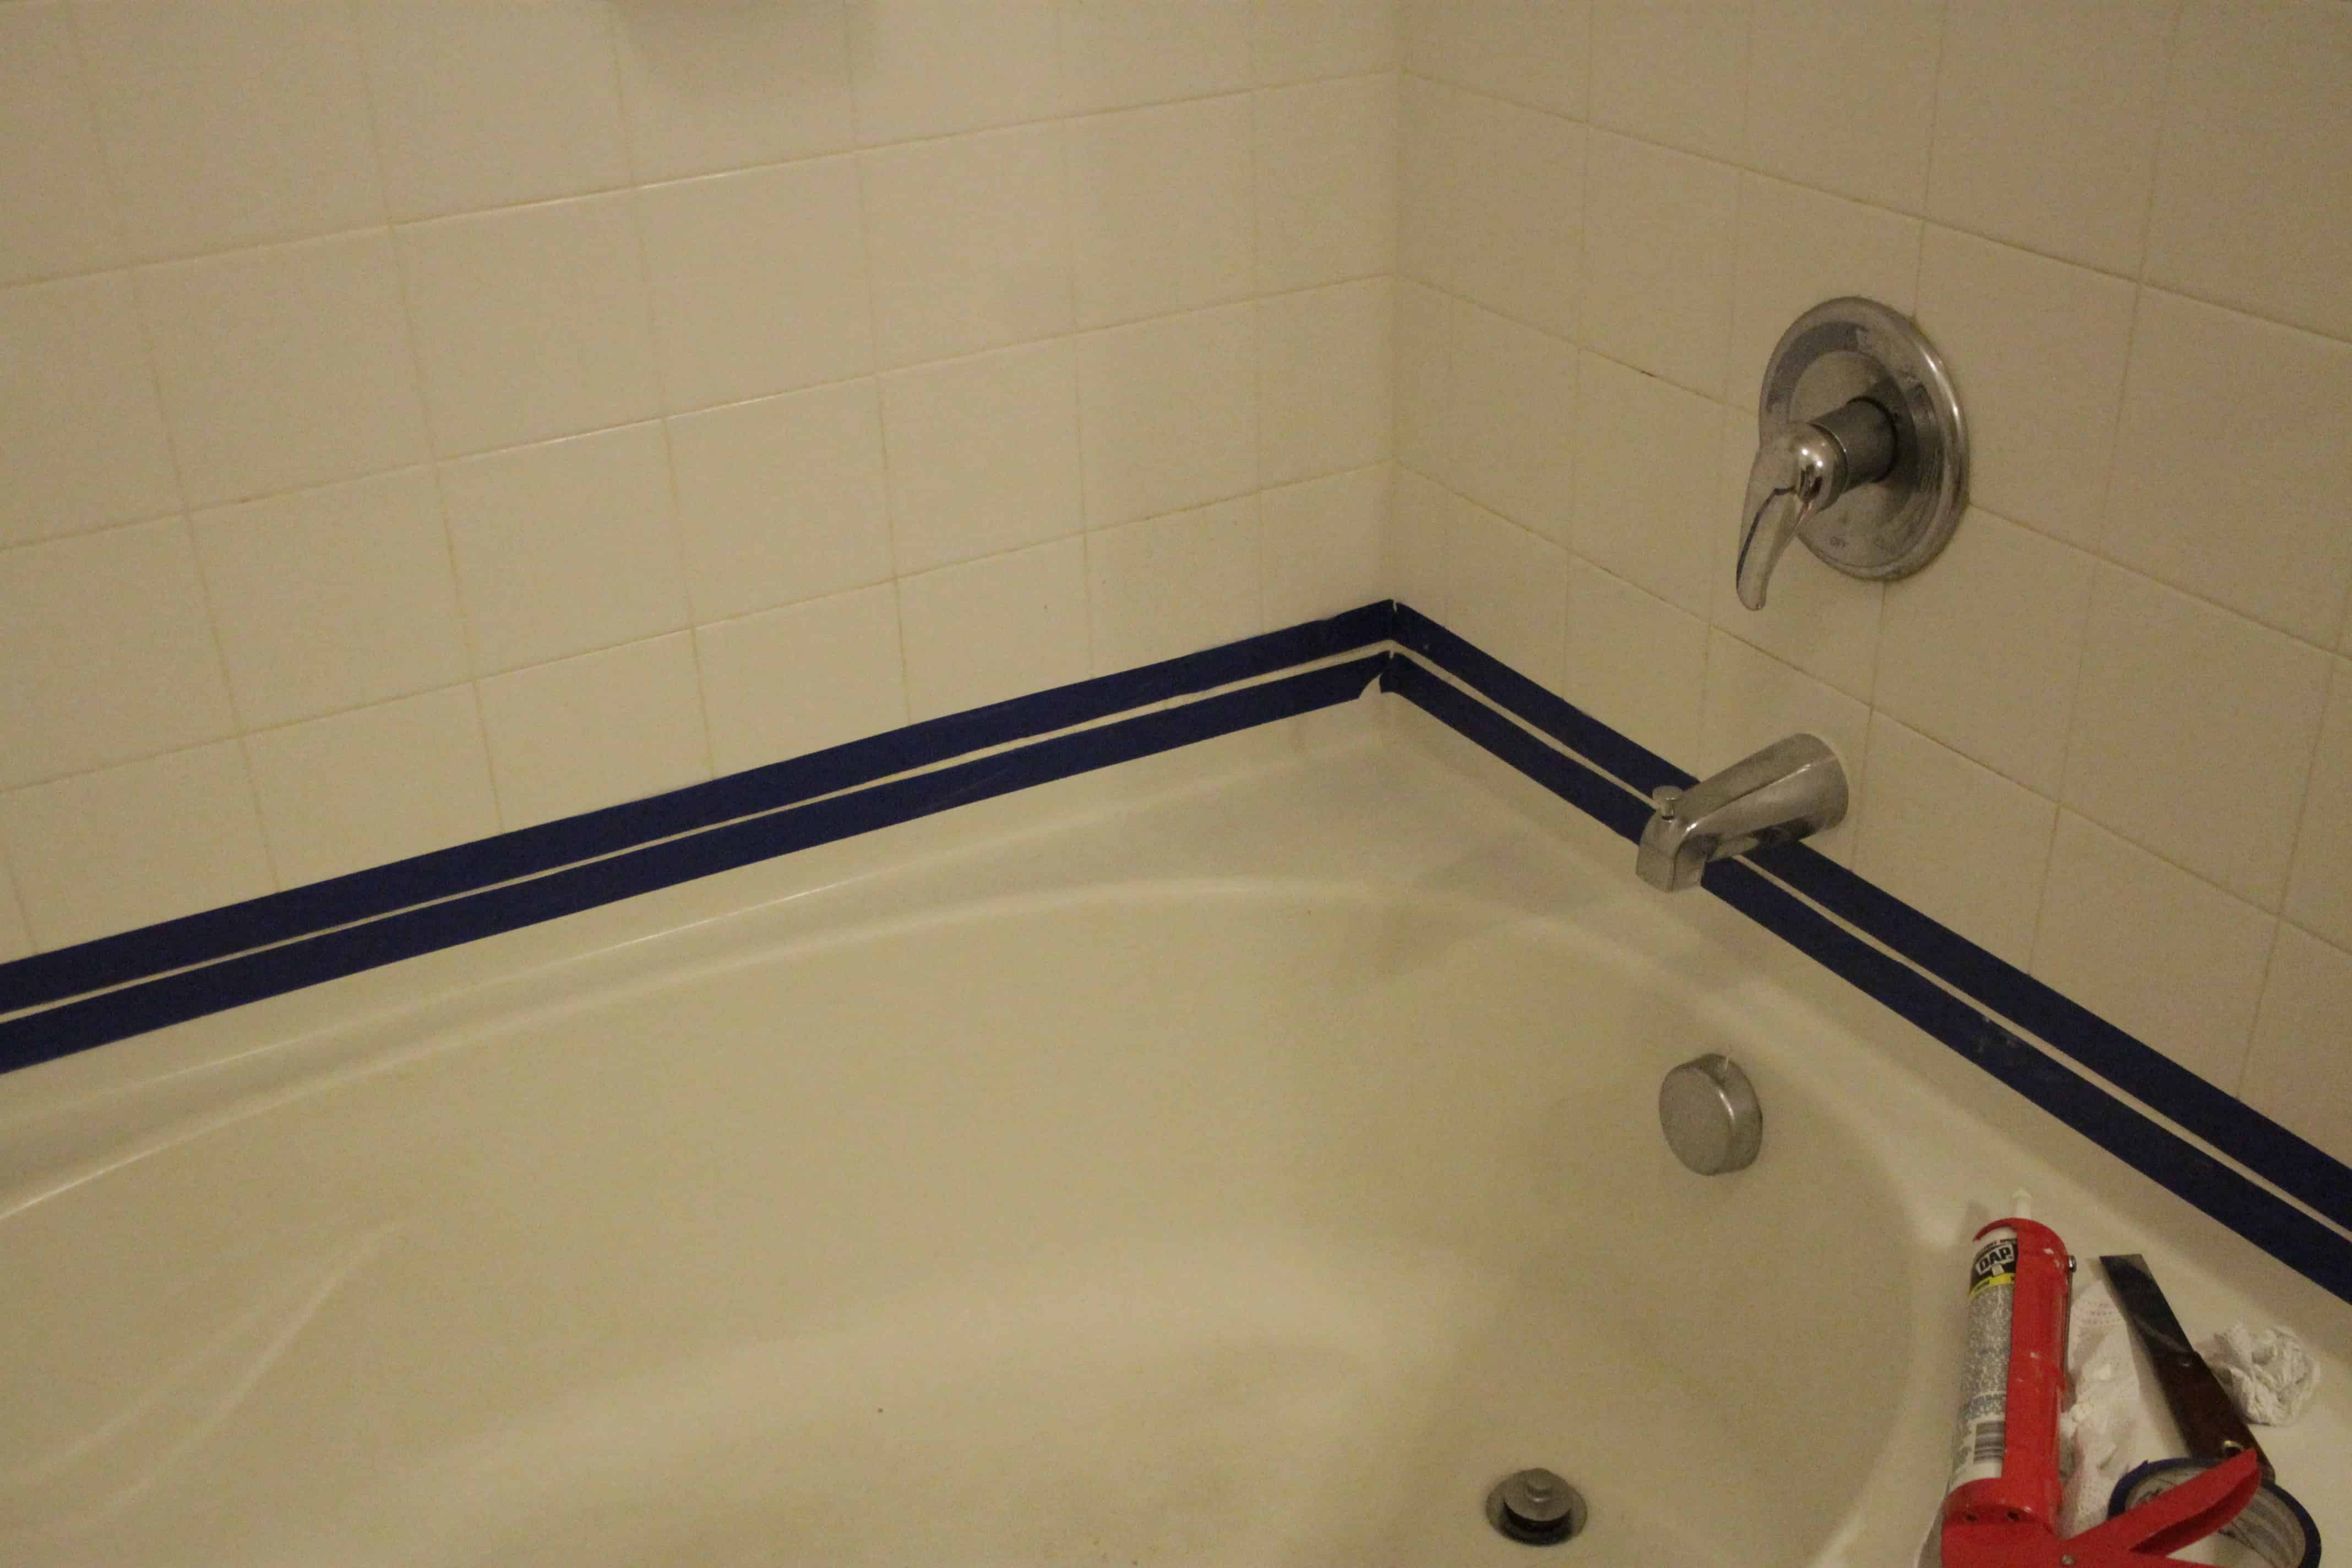 Best caulk for bathroom shower - Next Apply Caulk To The Seam We Had The Best Luck Making A Pulling Motion And Not A Pushing Motion In Other Words Squeeze Out The Caulk And Move The